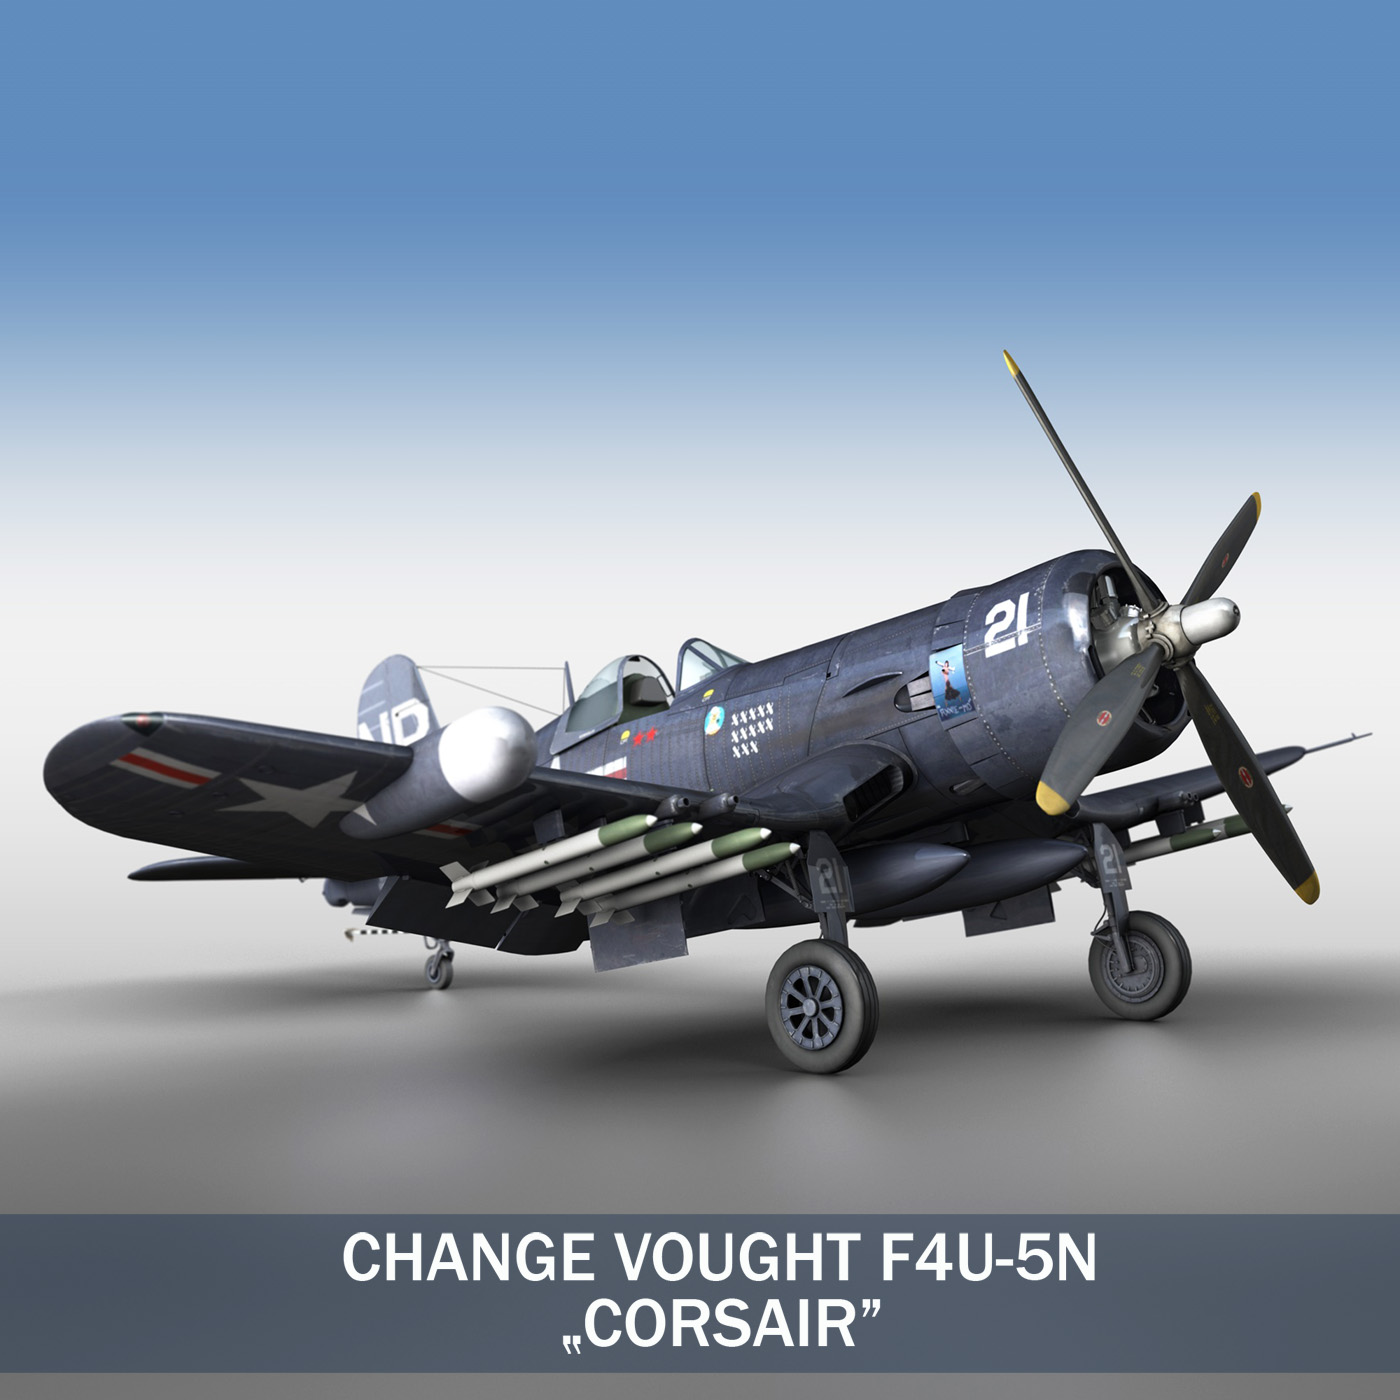 change vought f4u 5n corsair 3d model 3ds fbx c4d lwo obj 187325